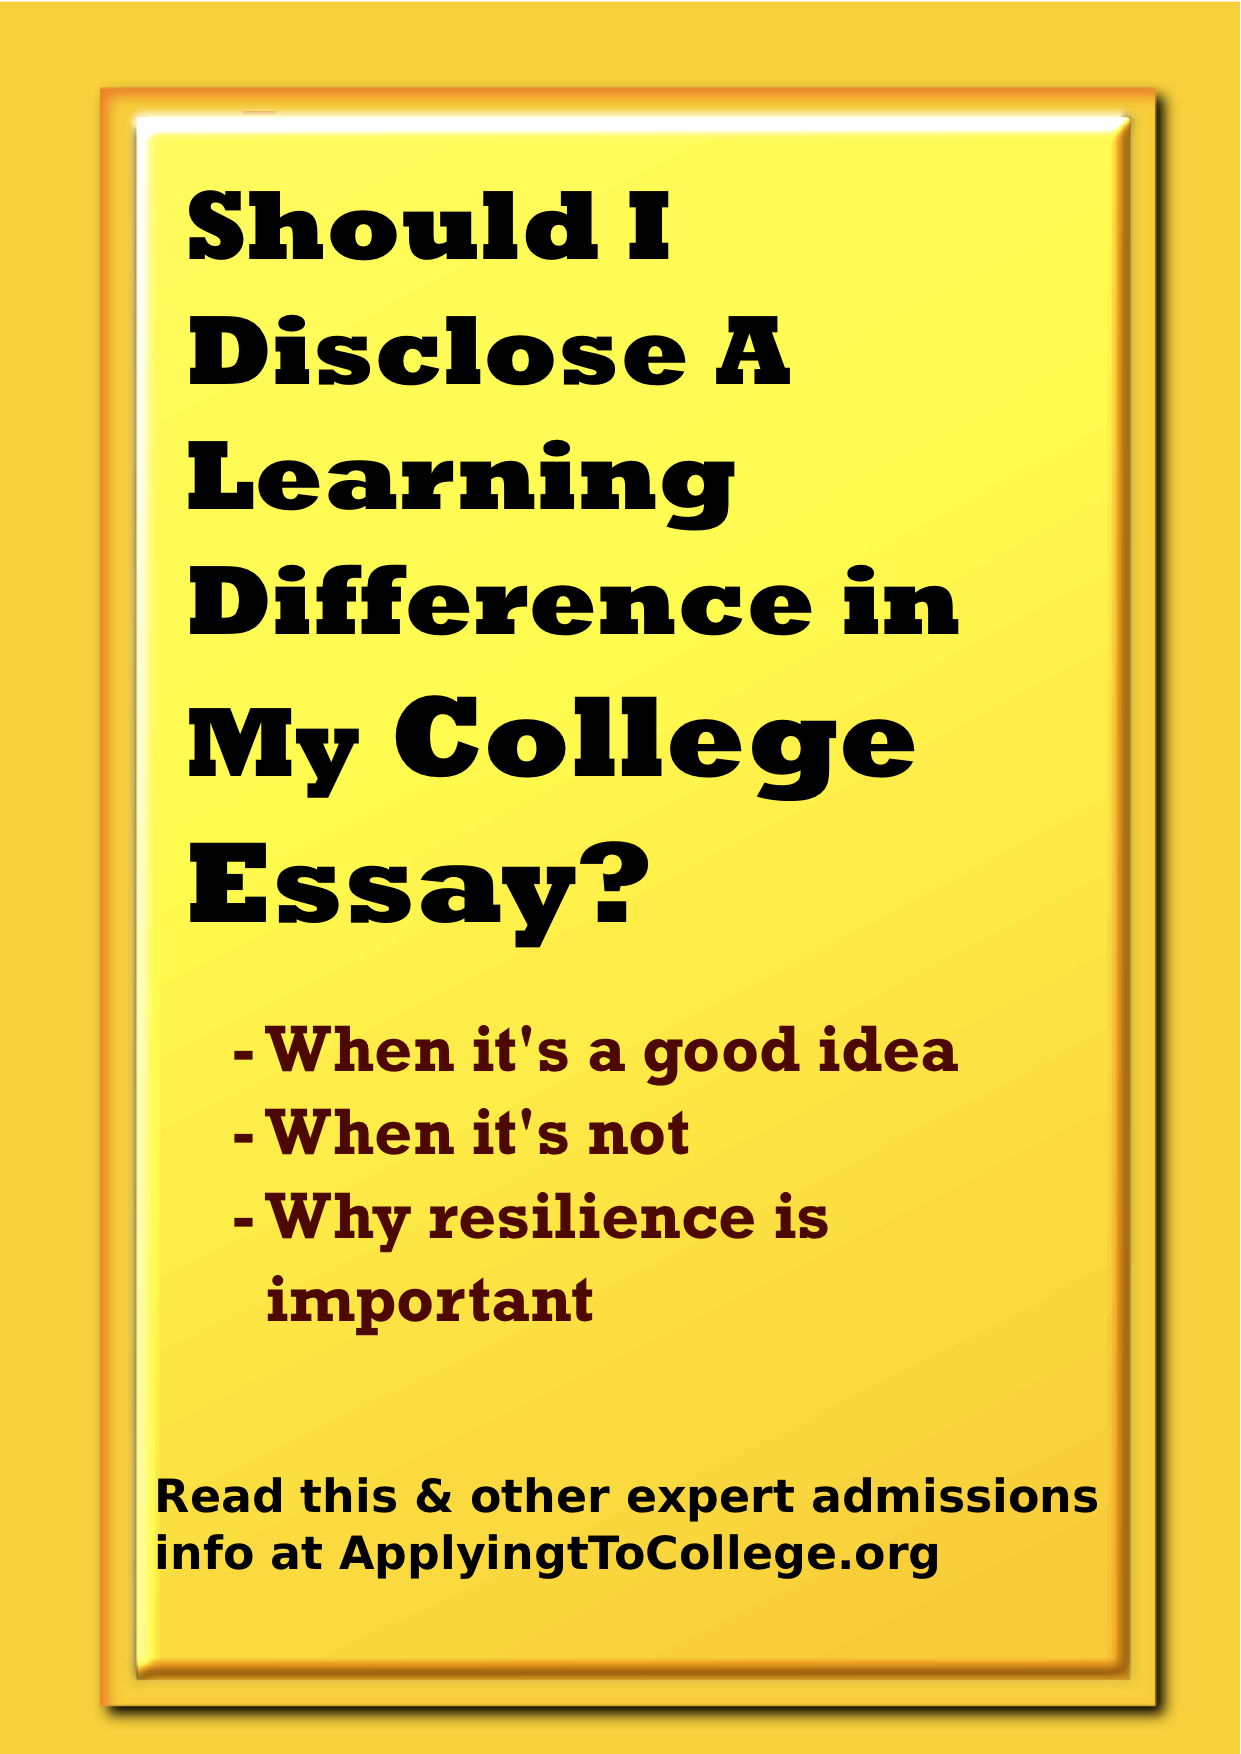 How long should my college essay be?